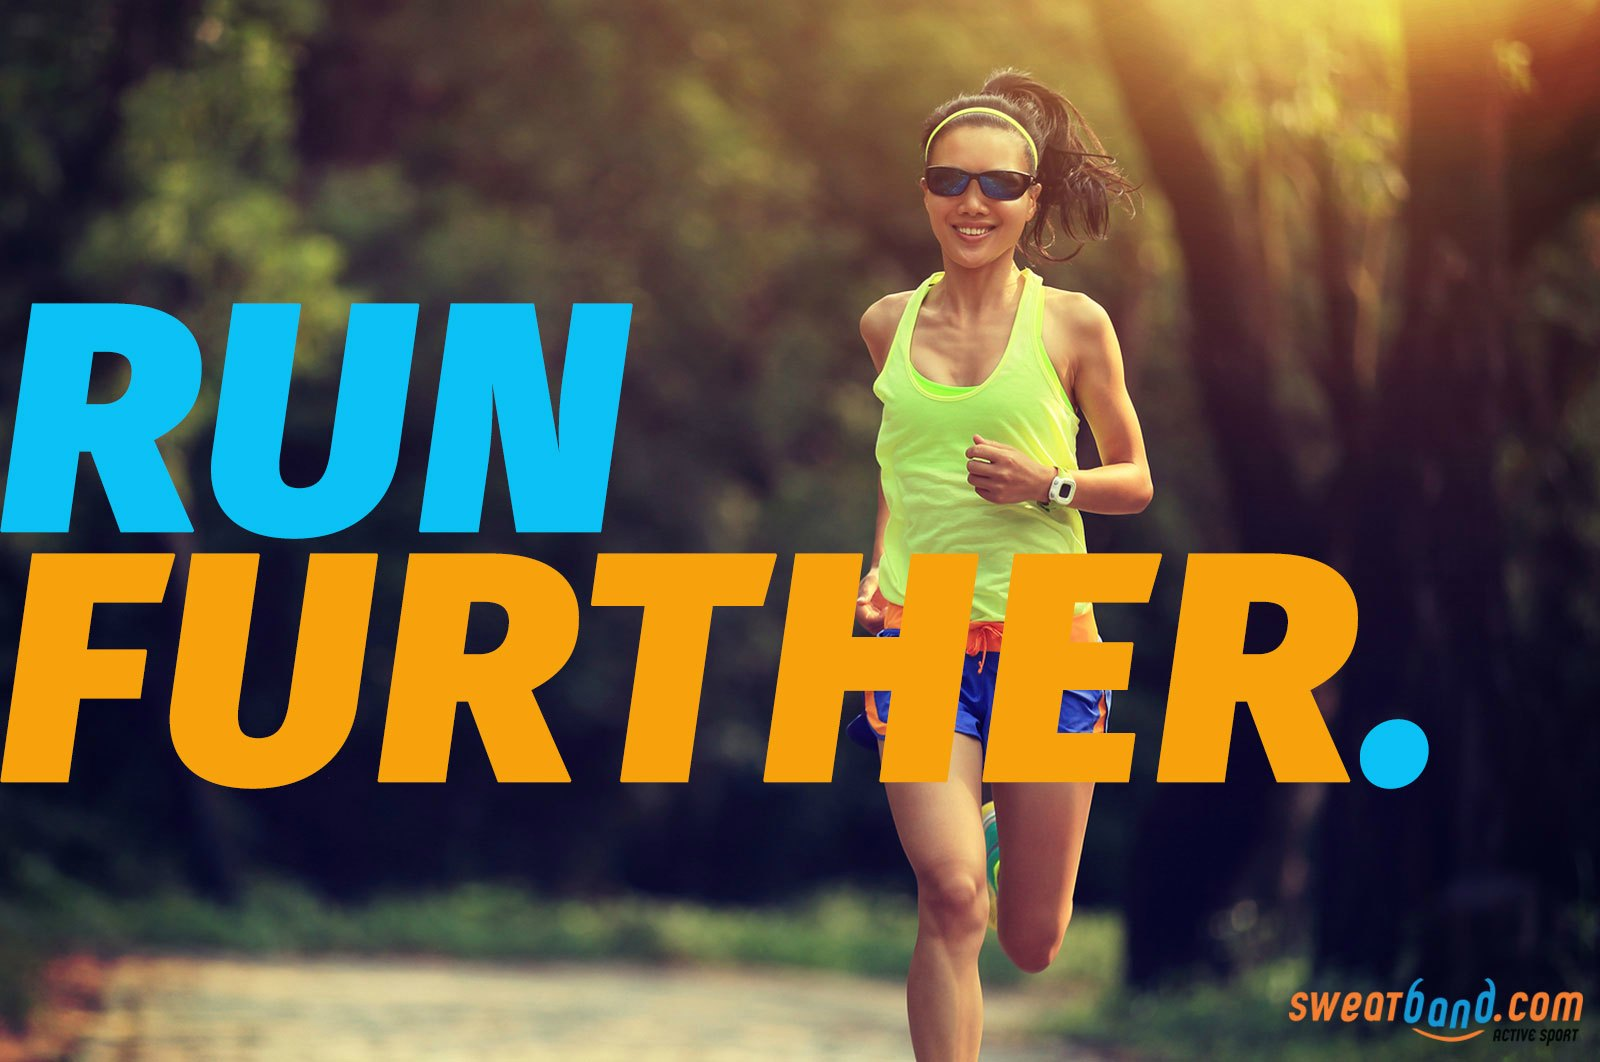 Mixing indoor sessions with running outdoors may help you run further than before